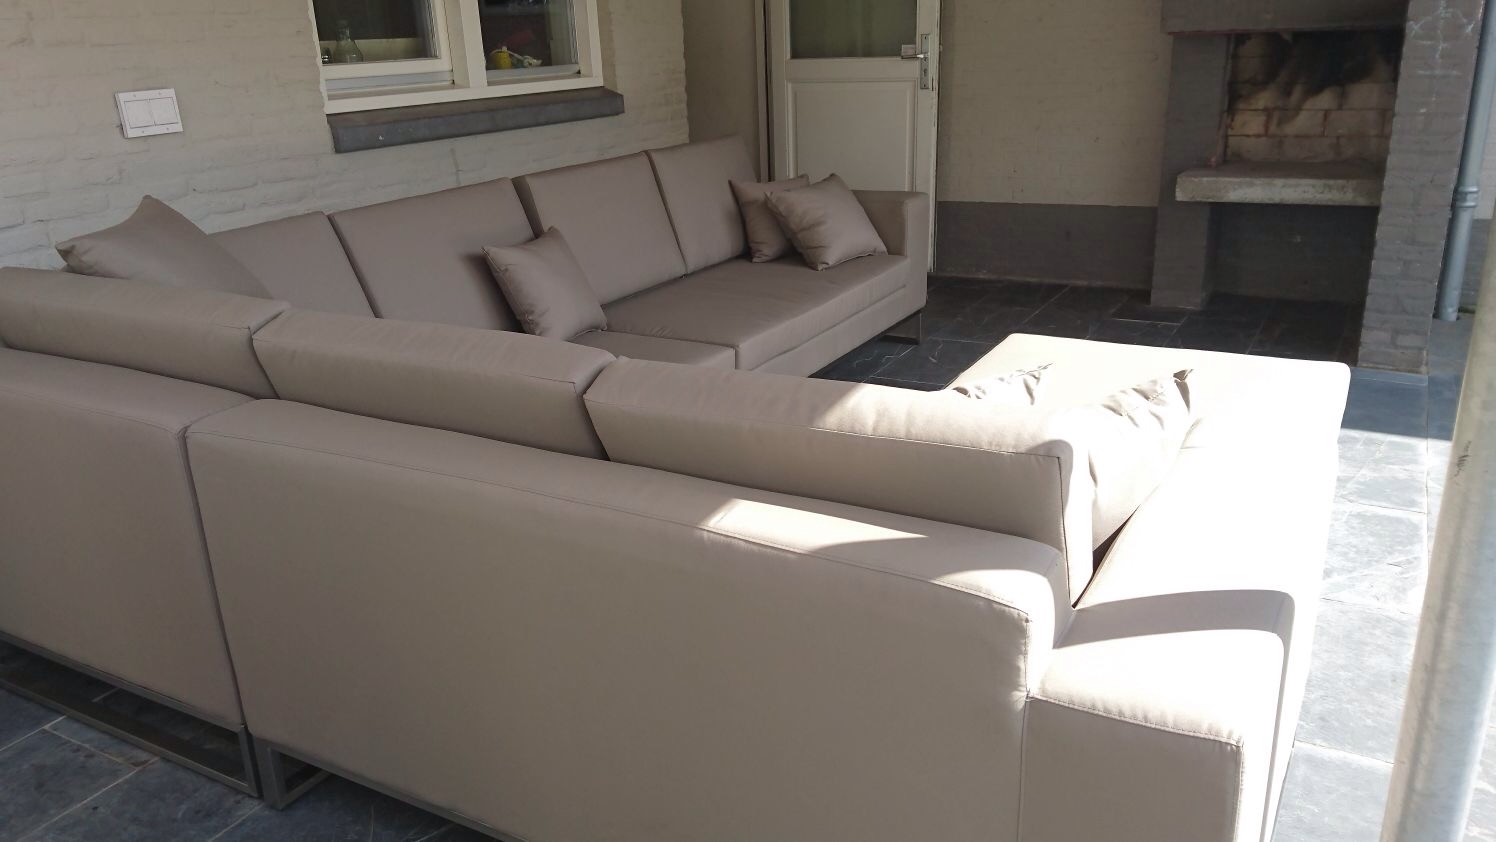 Loungeset Ancona bezorgd in Liempde